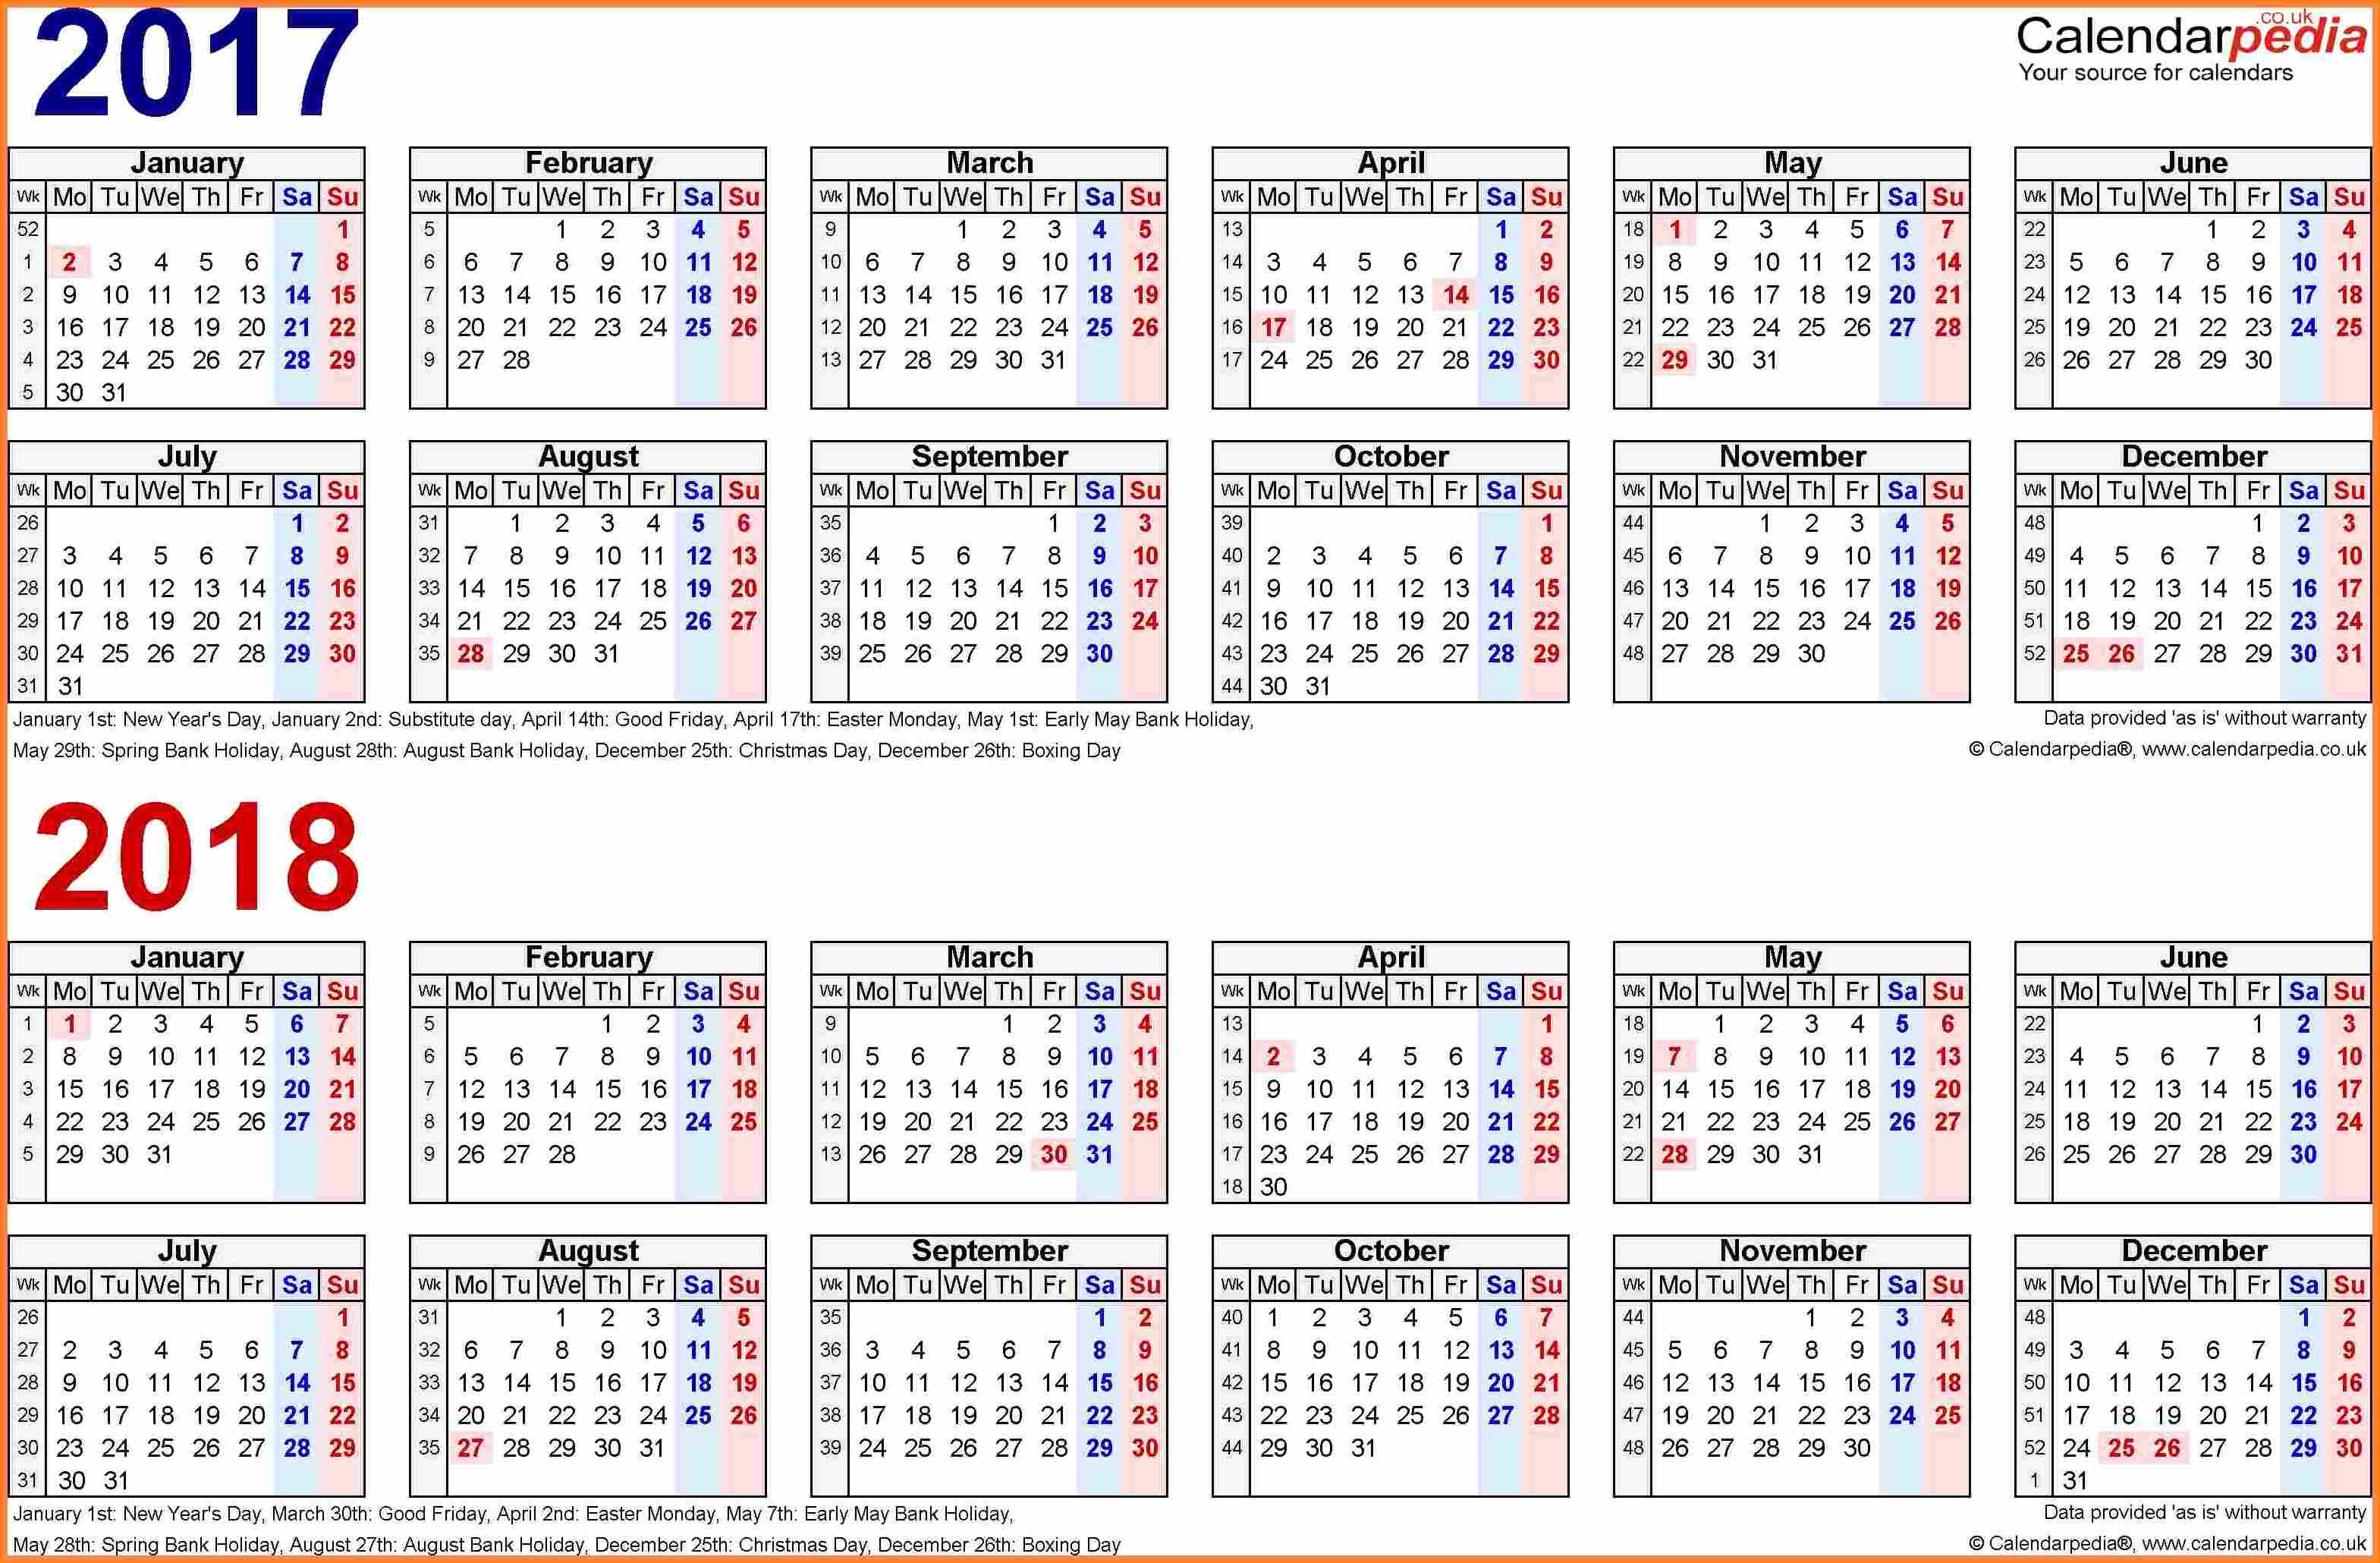 12+ Payroll Calendar Template 2017 | Secure Paystub with Biweekly Payroll Calendar Template